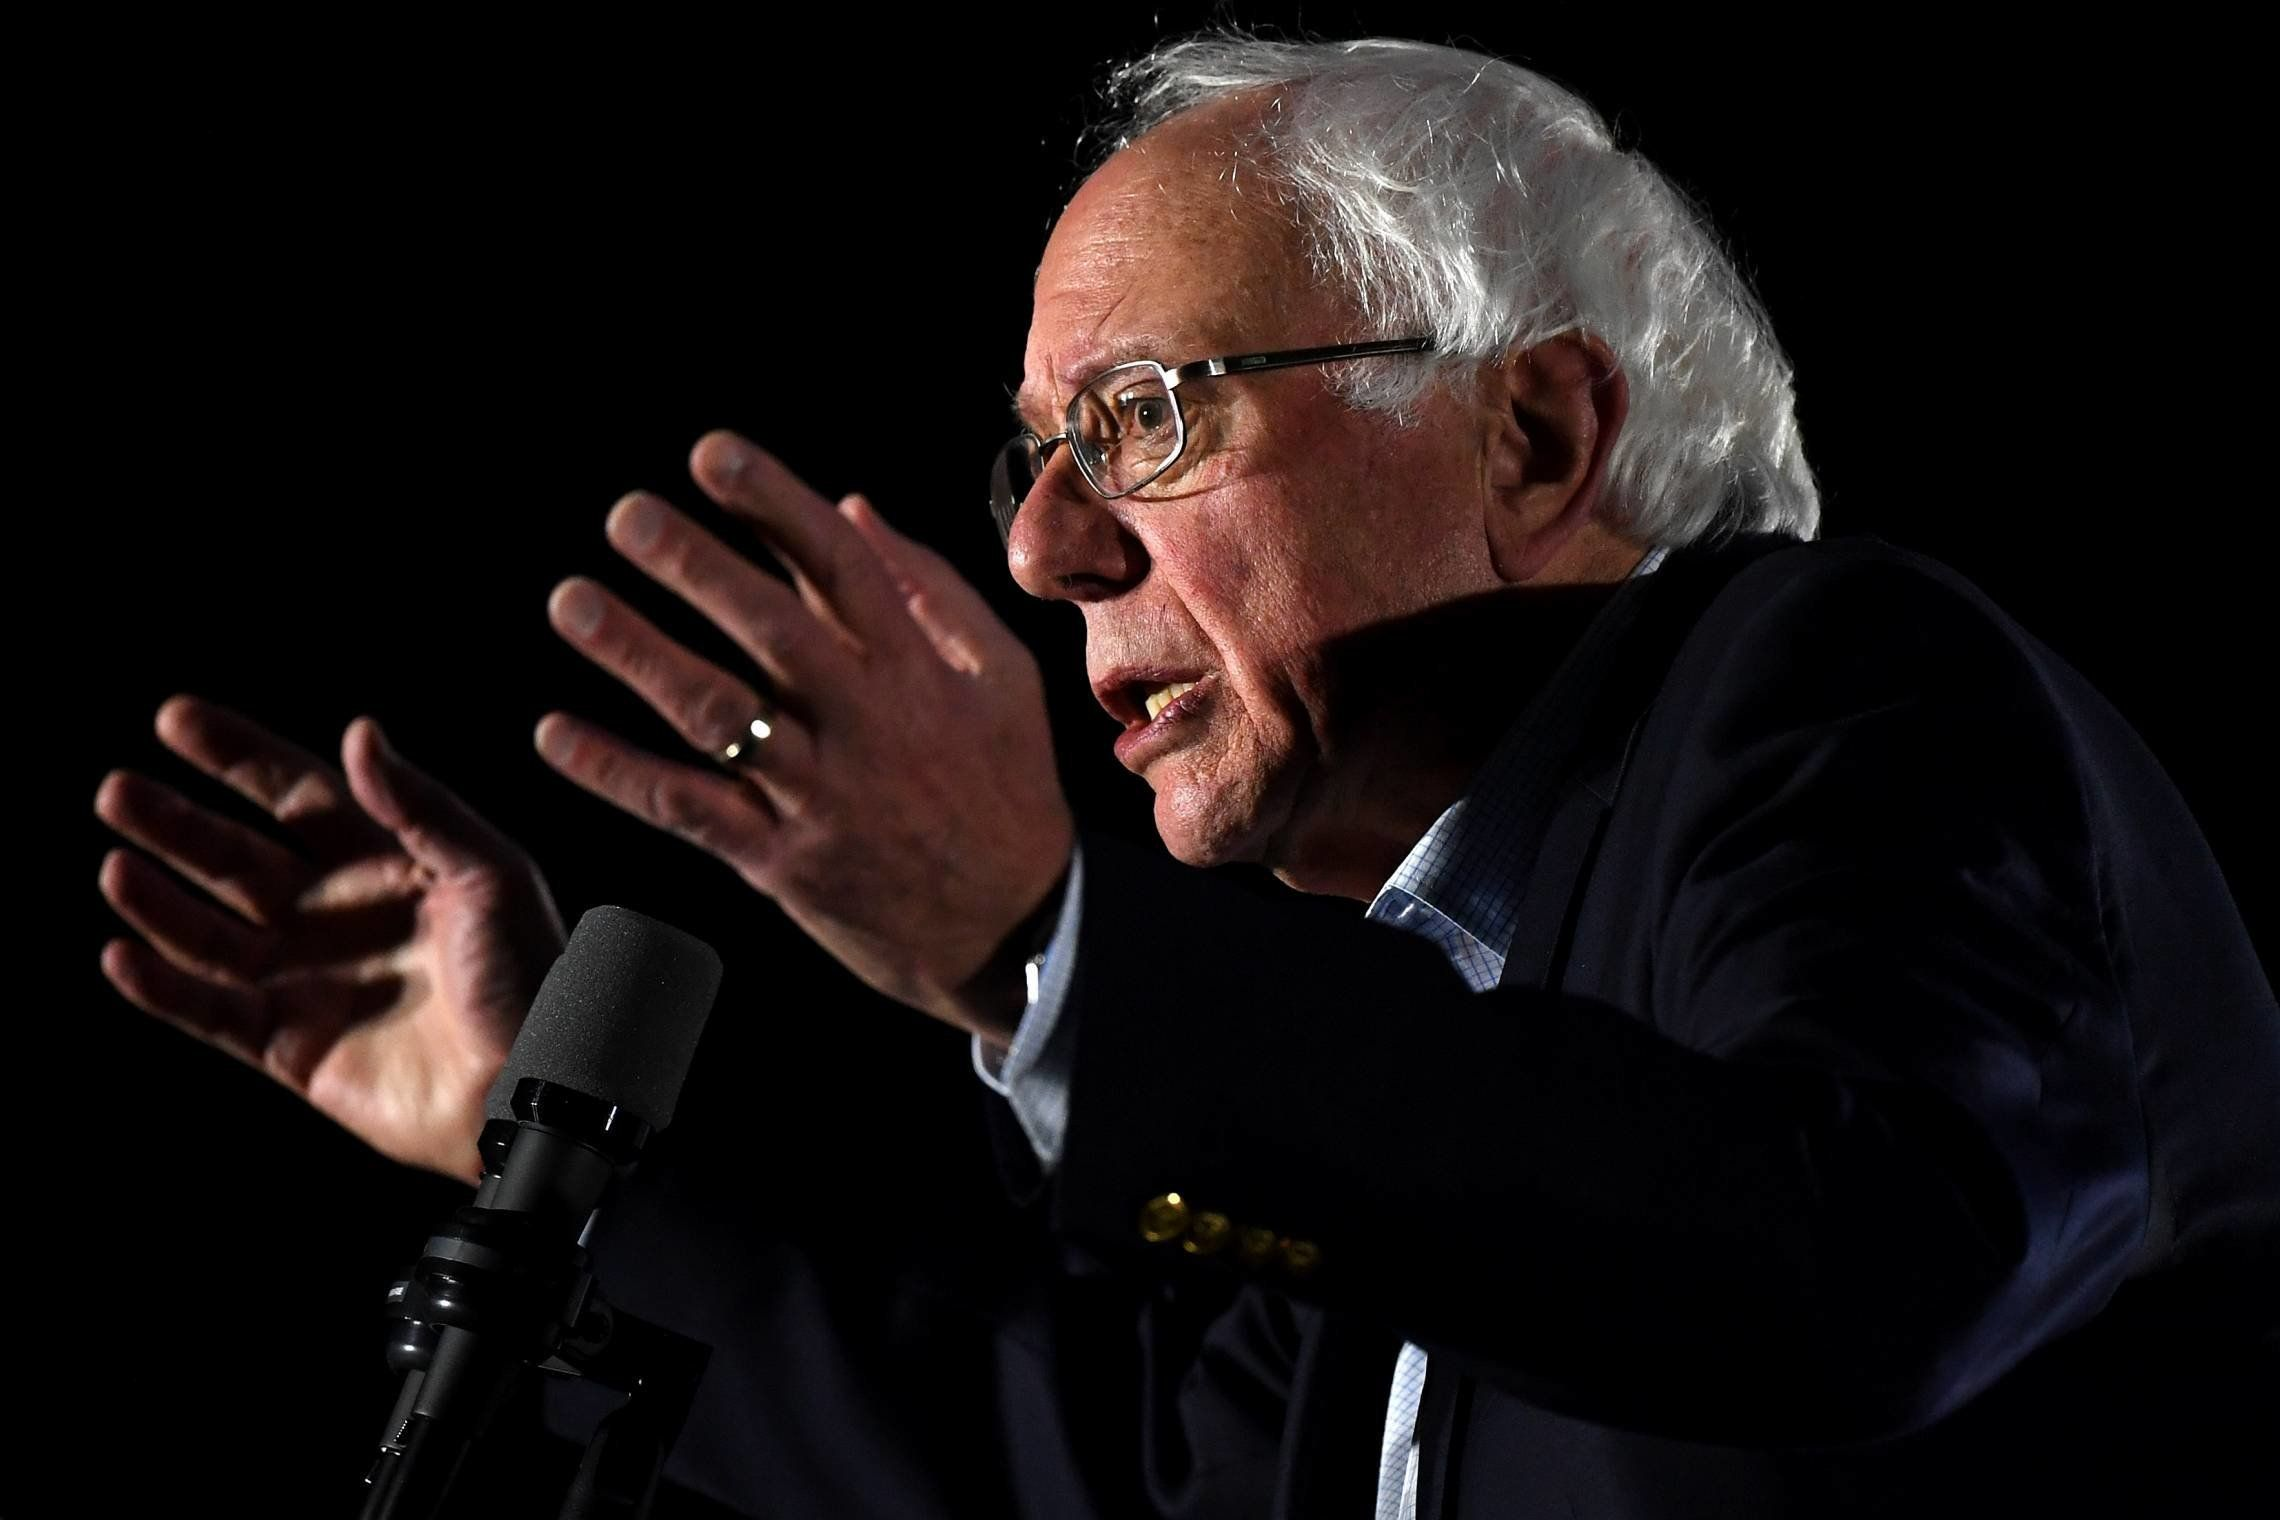 Bernie Sanders Stakes Out Forceful Climate Stance, Leapfrogging The 2020